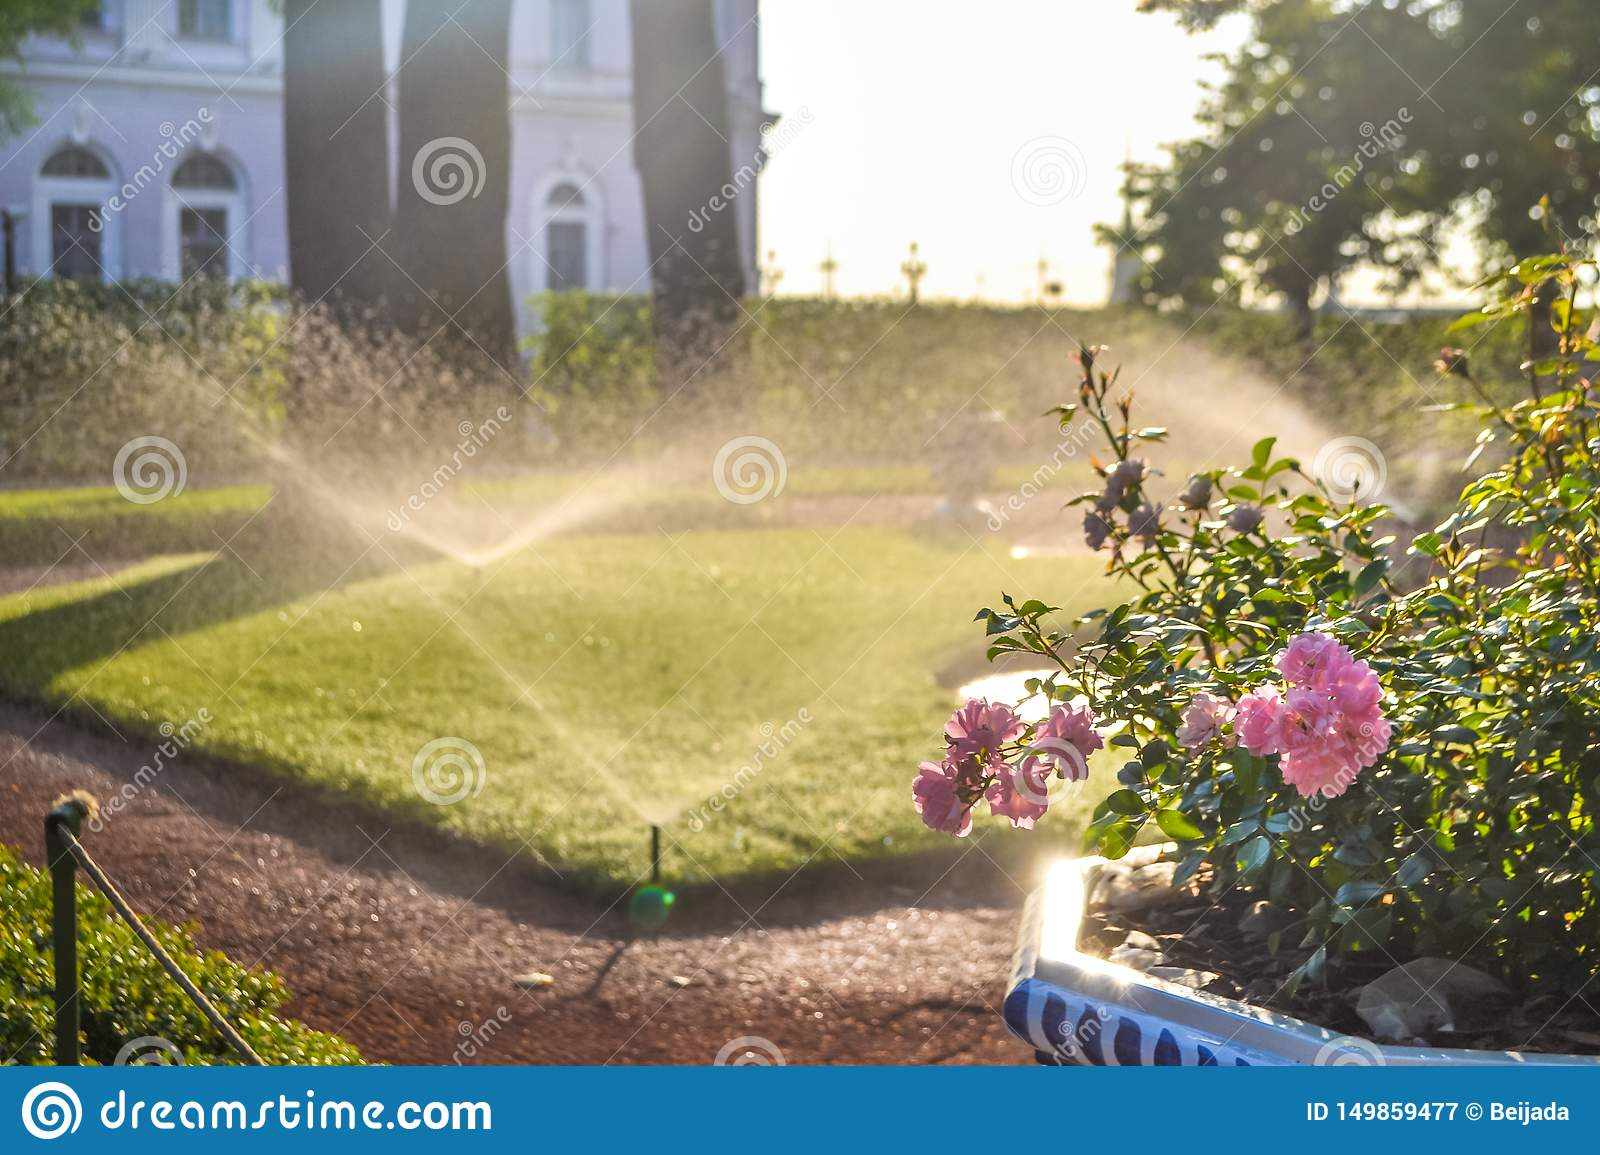 Sunny day and irrigation sprinklers at Summer Garden, St. Petersburg